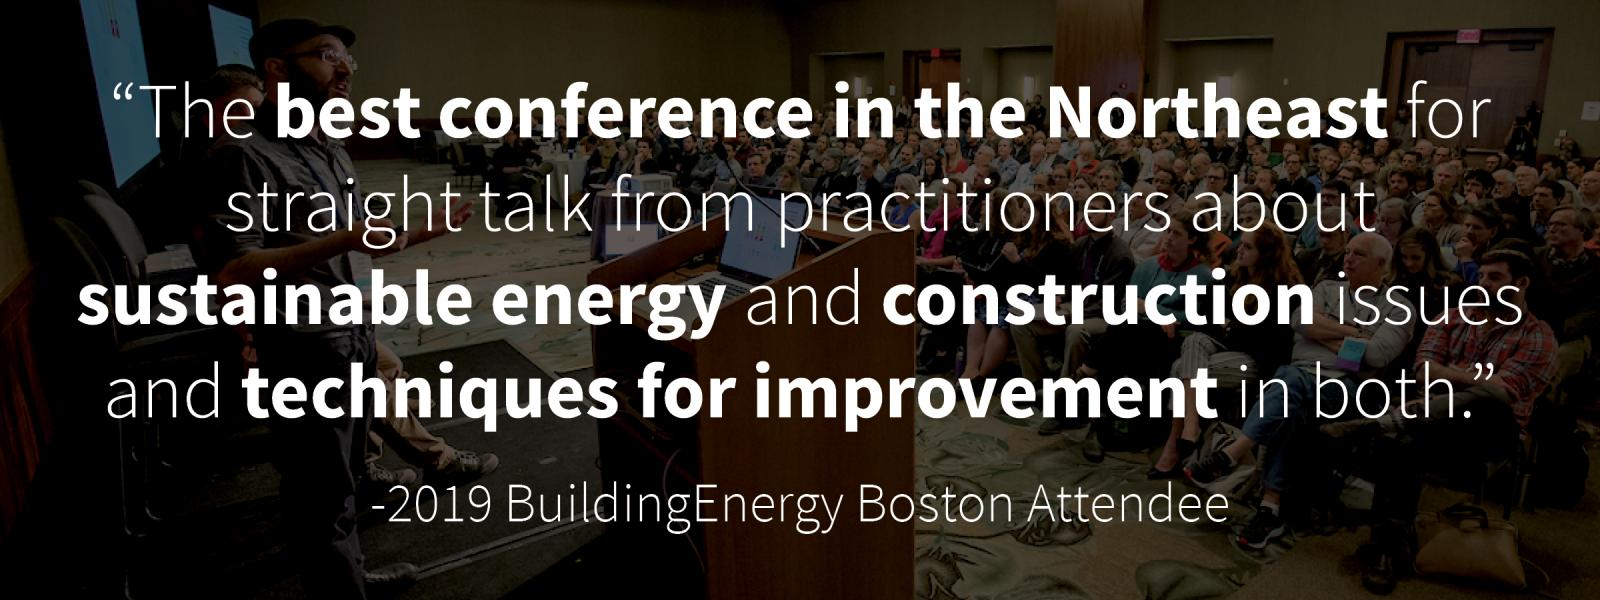 BuildingEnergy Boston | NESEA